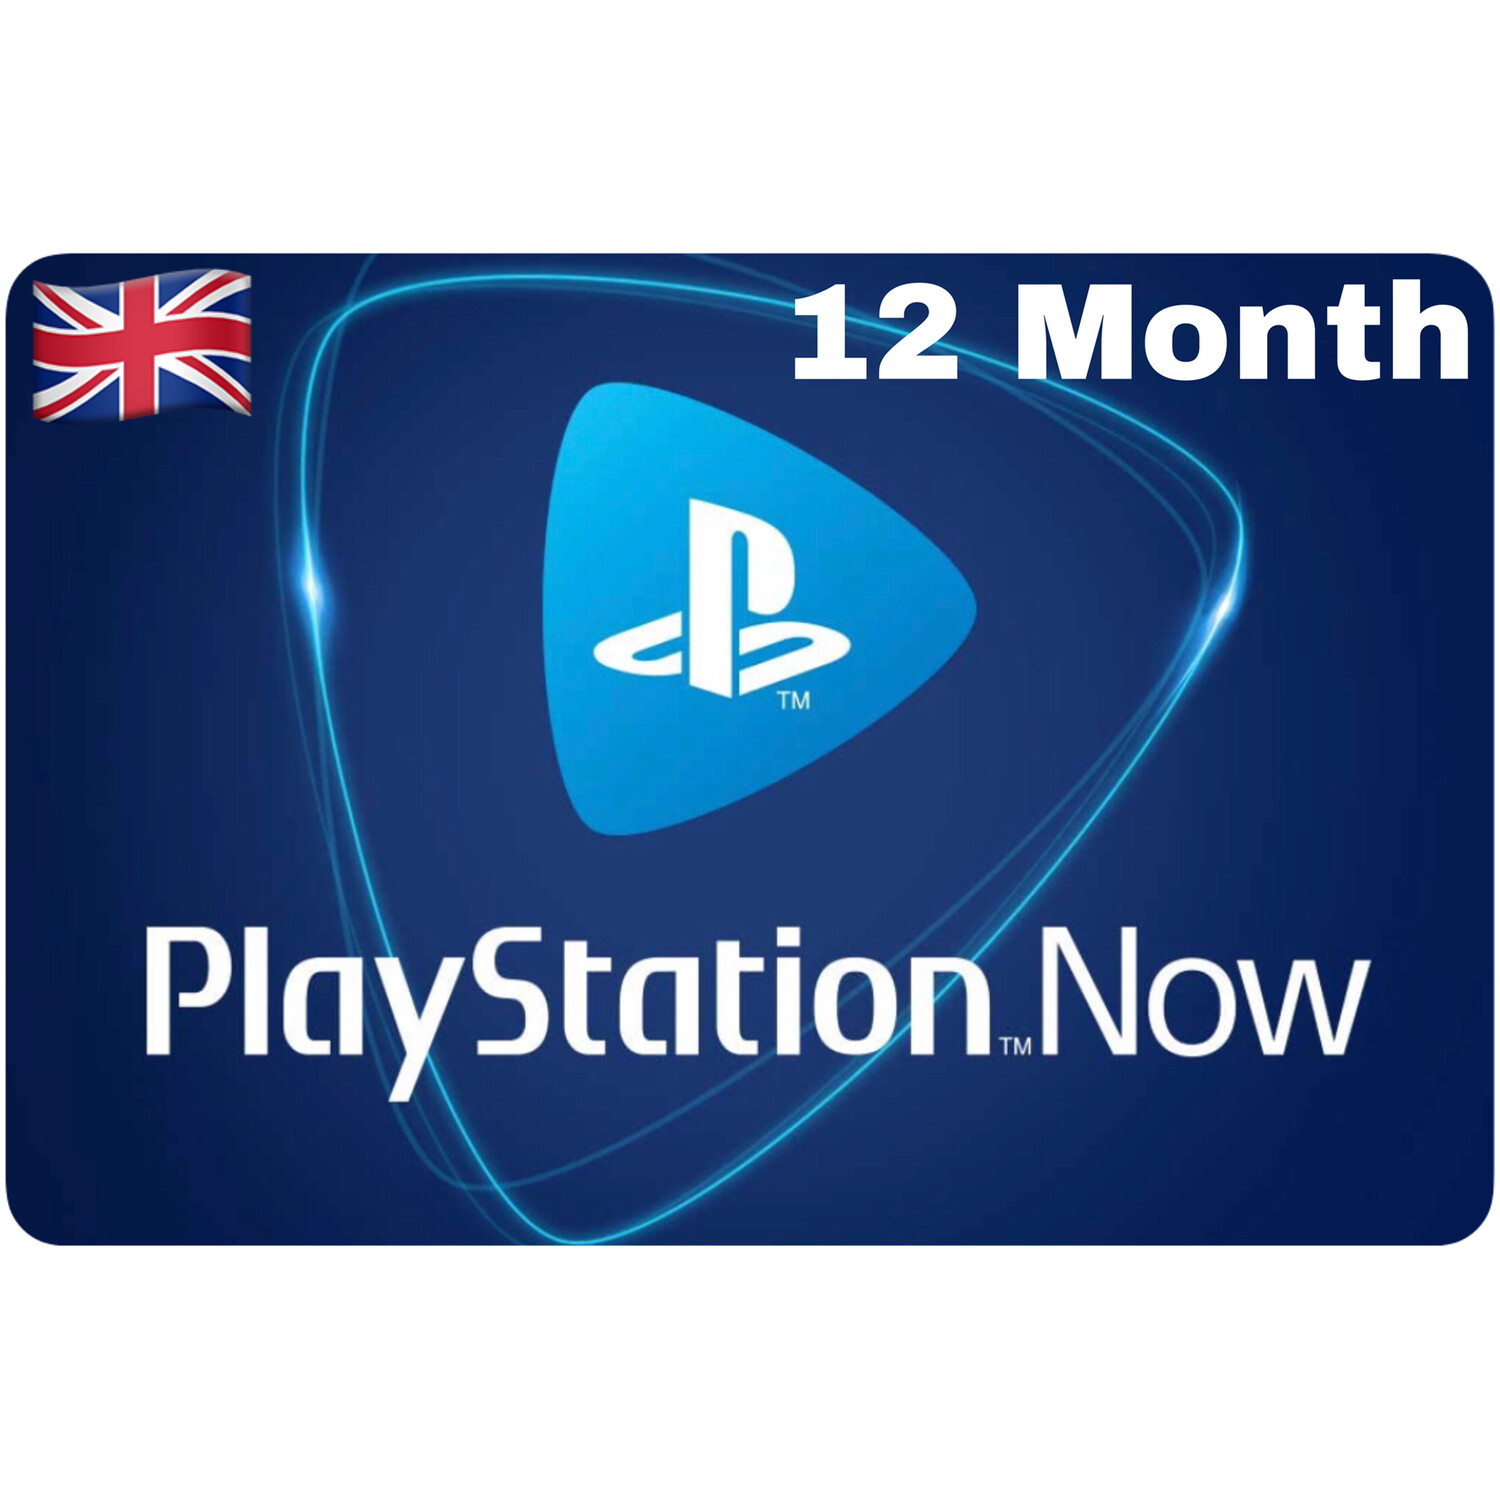 Playstation Now UK 12 Month Subscription